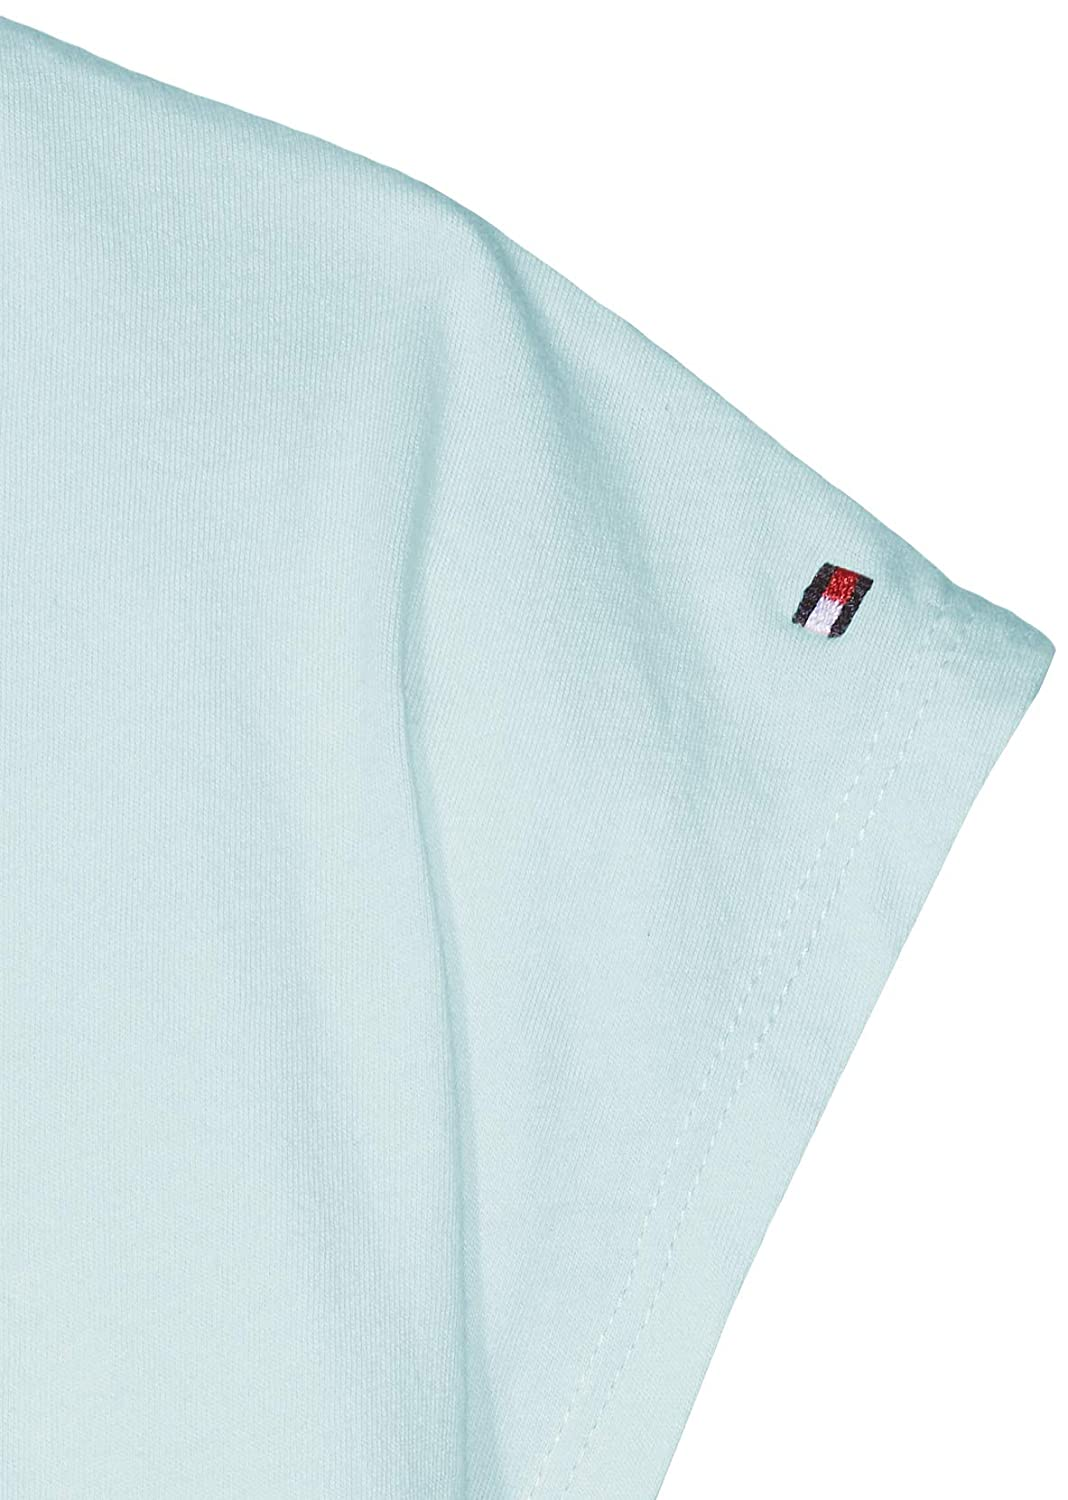 Tommy Hilfiger Girls Small Logo Grown on S//S Tee T-Shirt